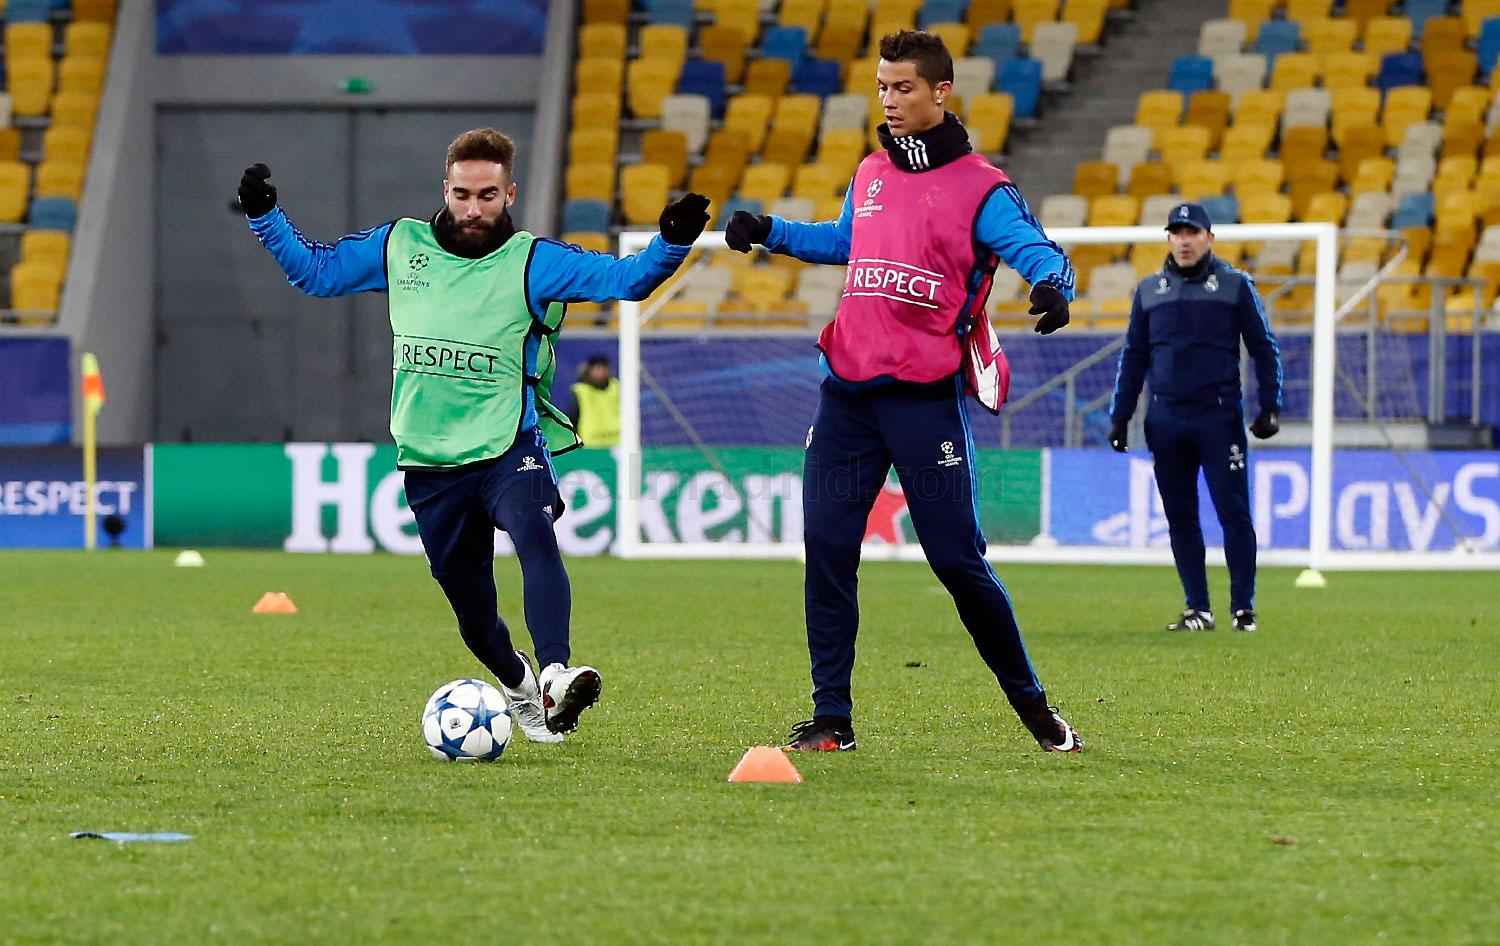 Real Madrid - Entrenamiento Lviv - 24-11-2015